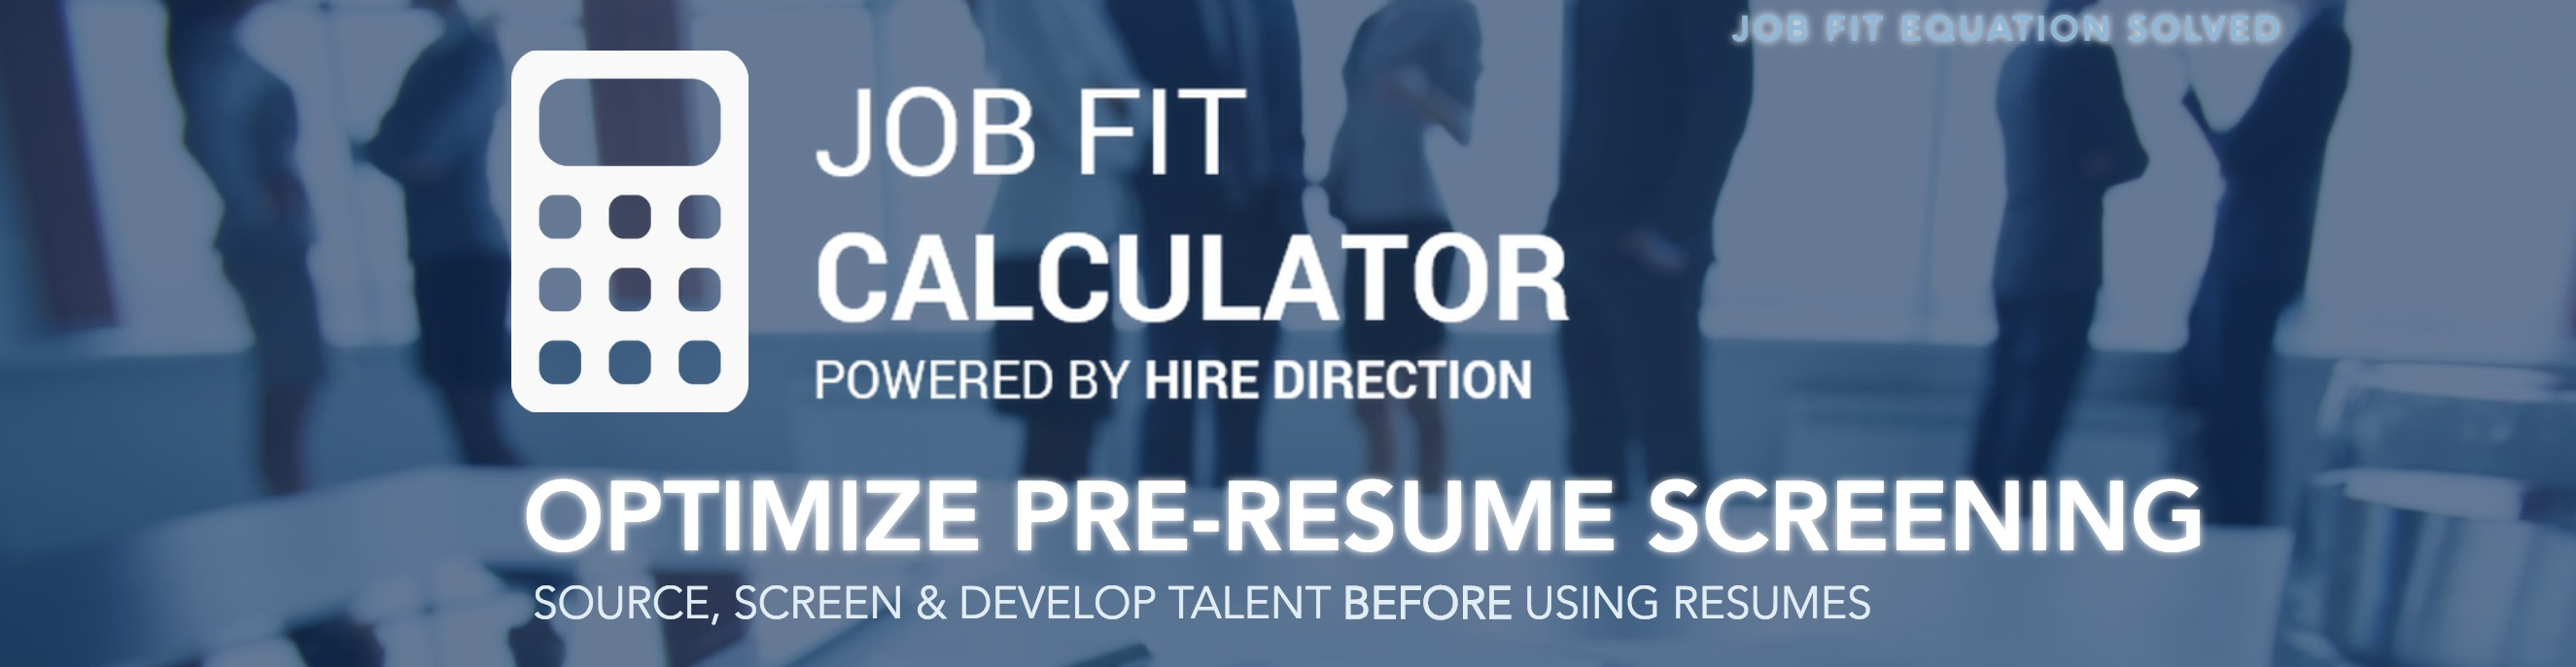 Job Fit Calculator Powered By HIRE DIRECTION Cover Image